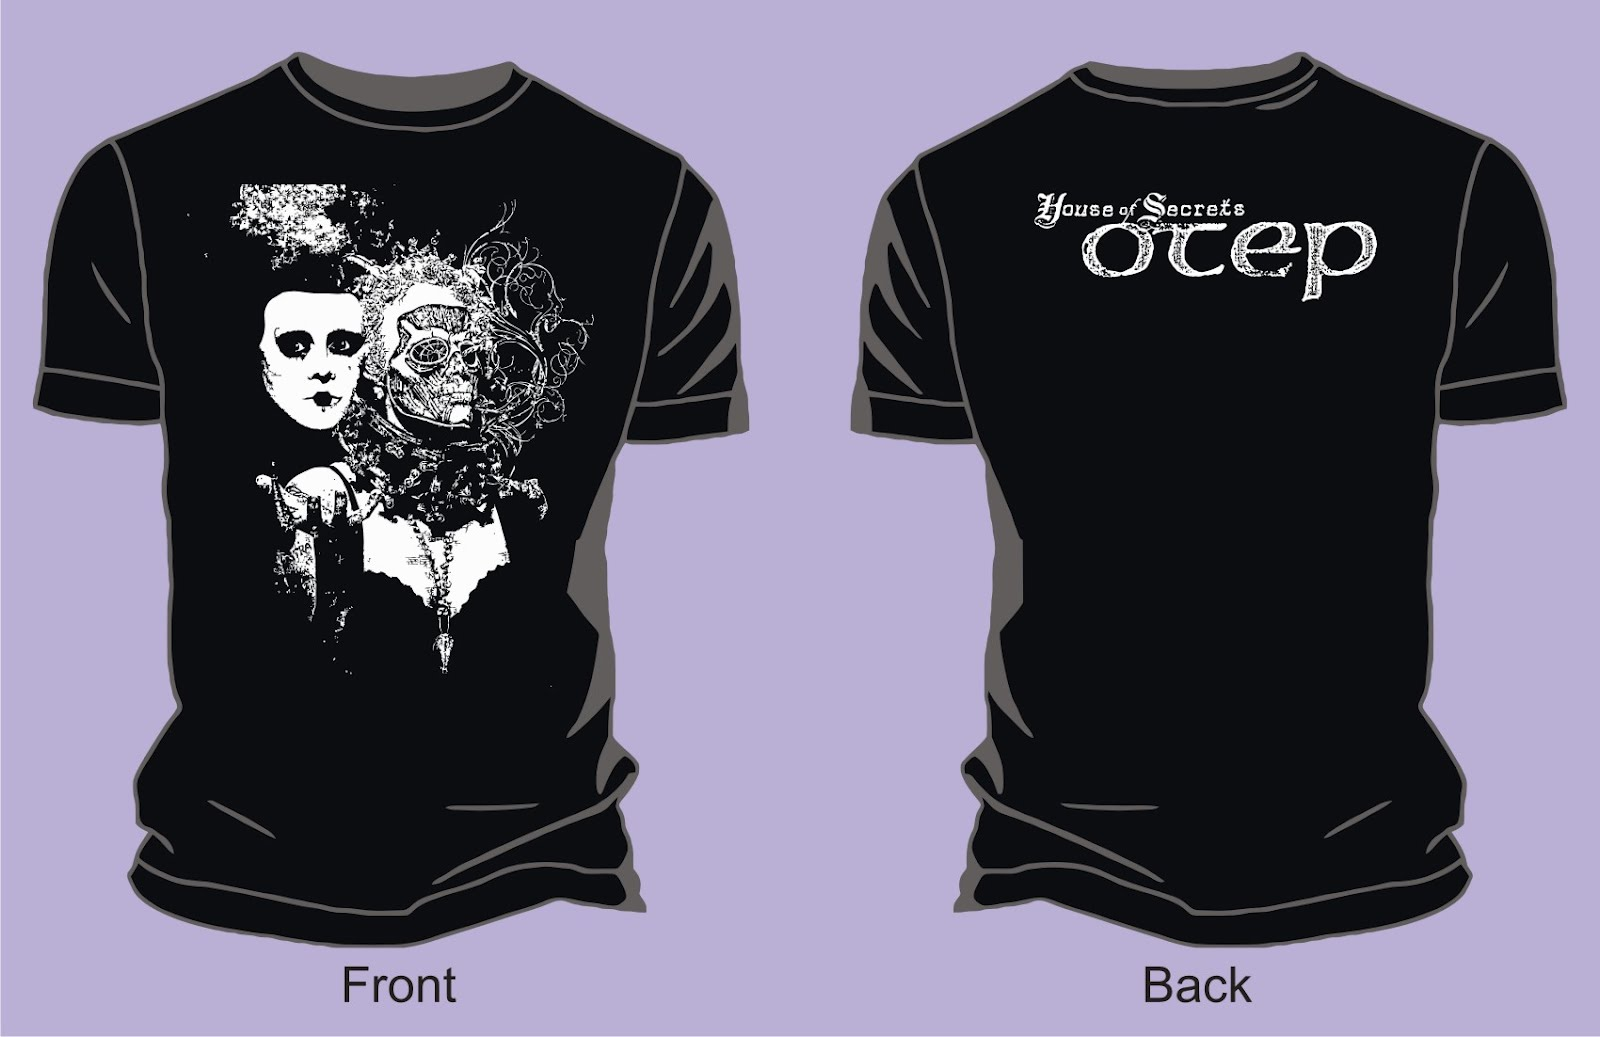 otep-house_of_secrets_vector